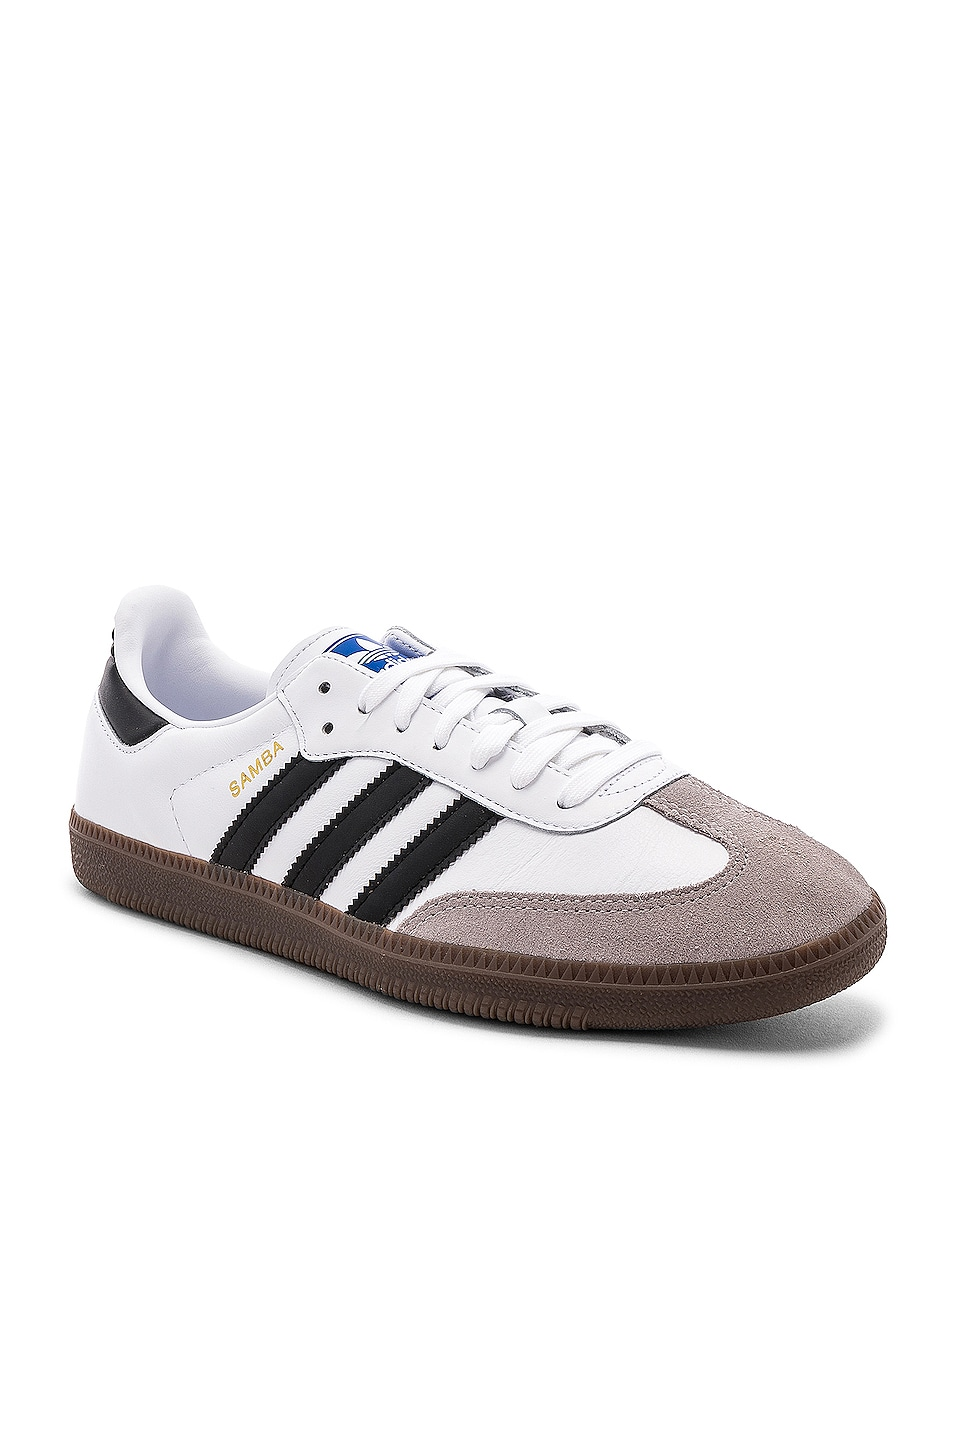 Image 2 of adidas Originals Samba in White & Black & Clear Granite